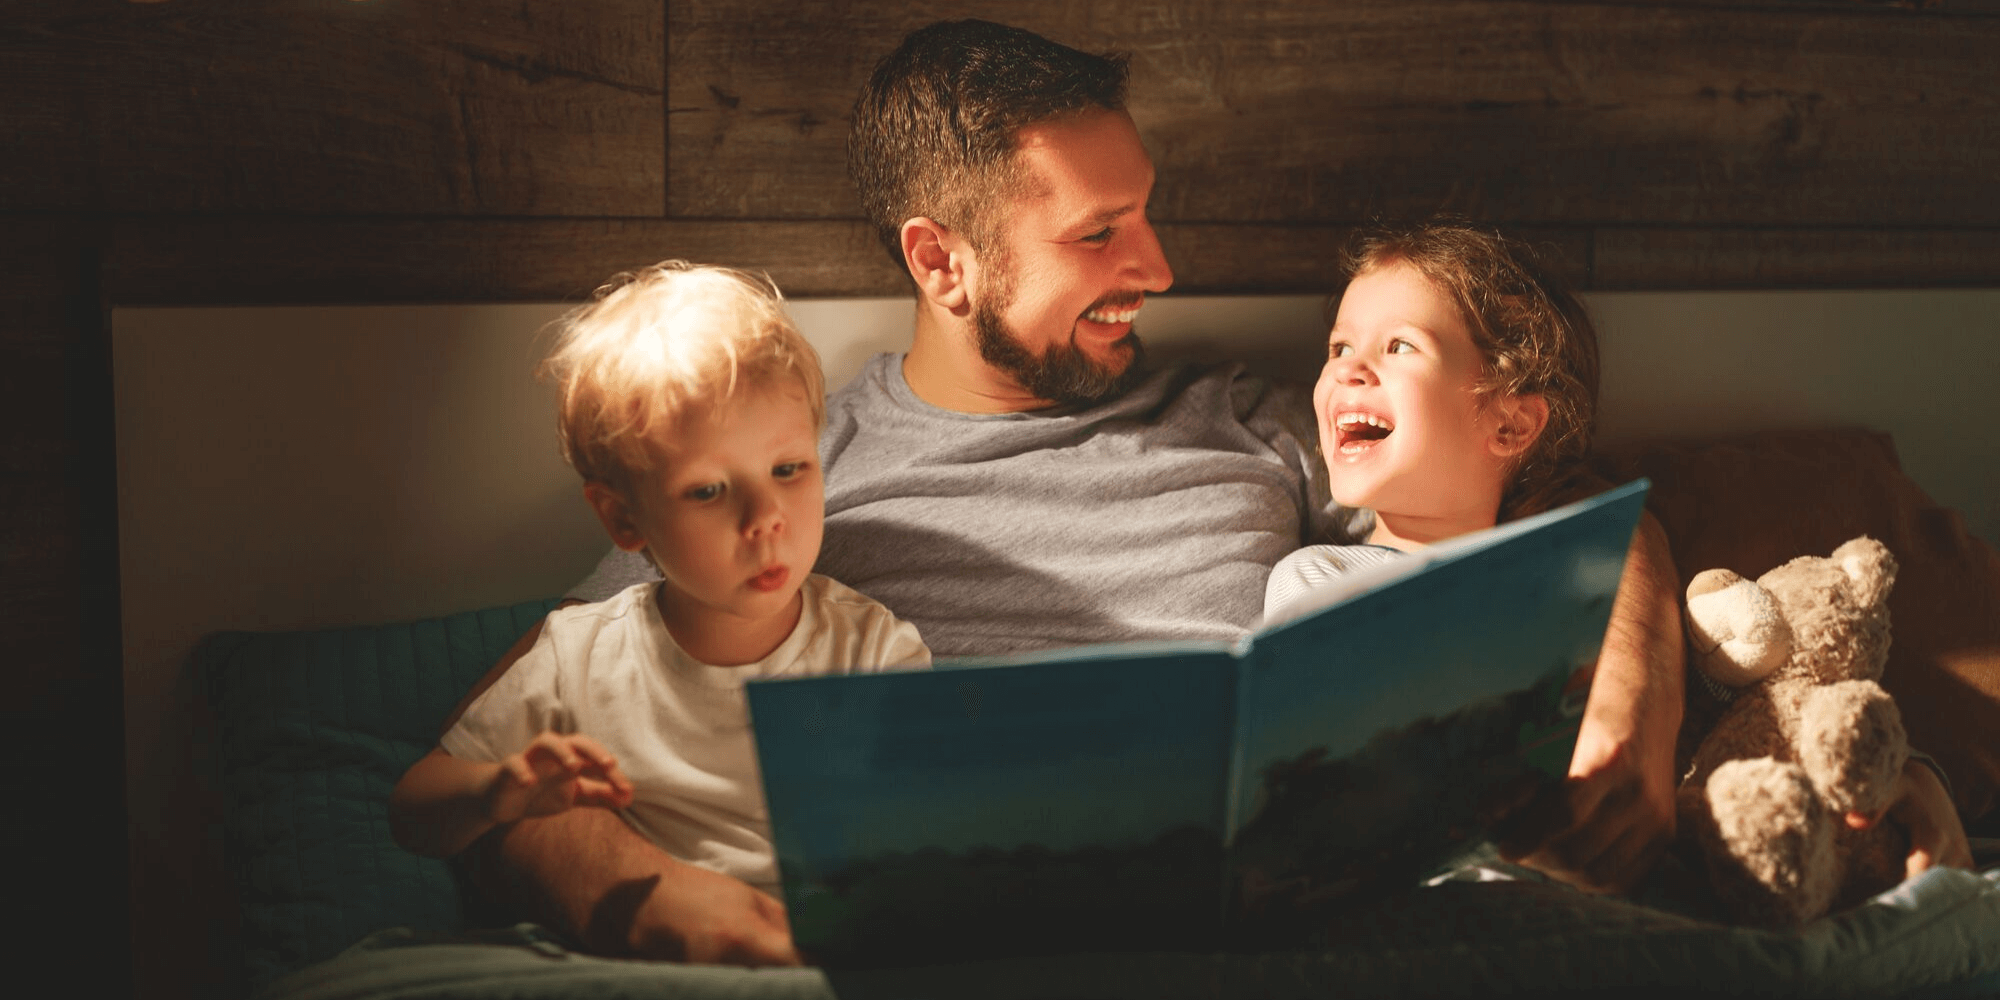 Father reading a bed time story to his children